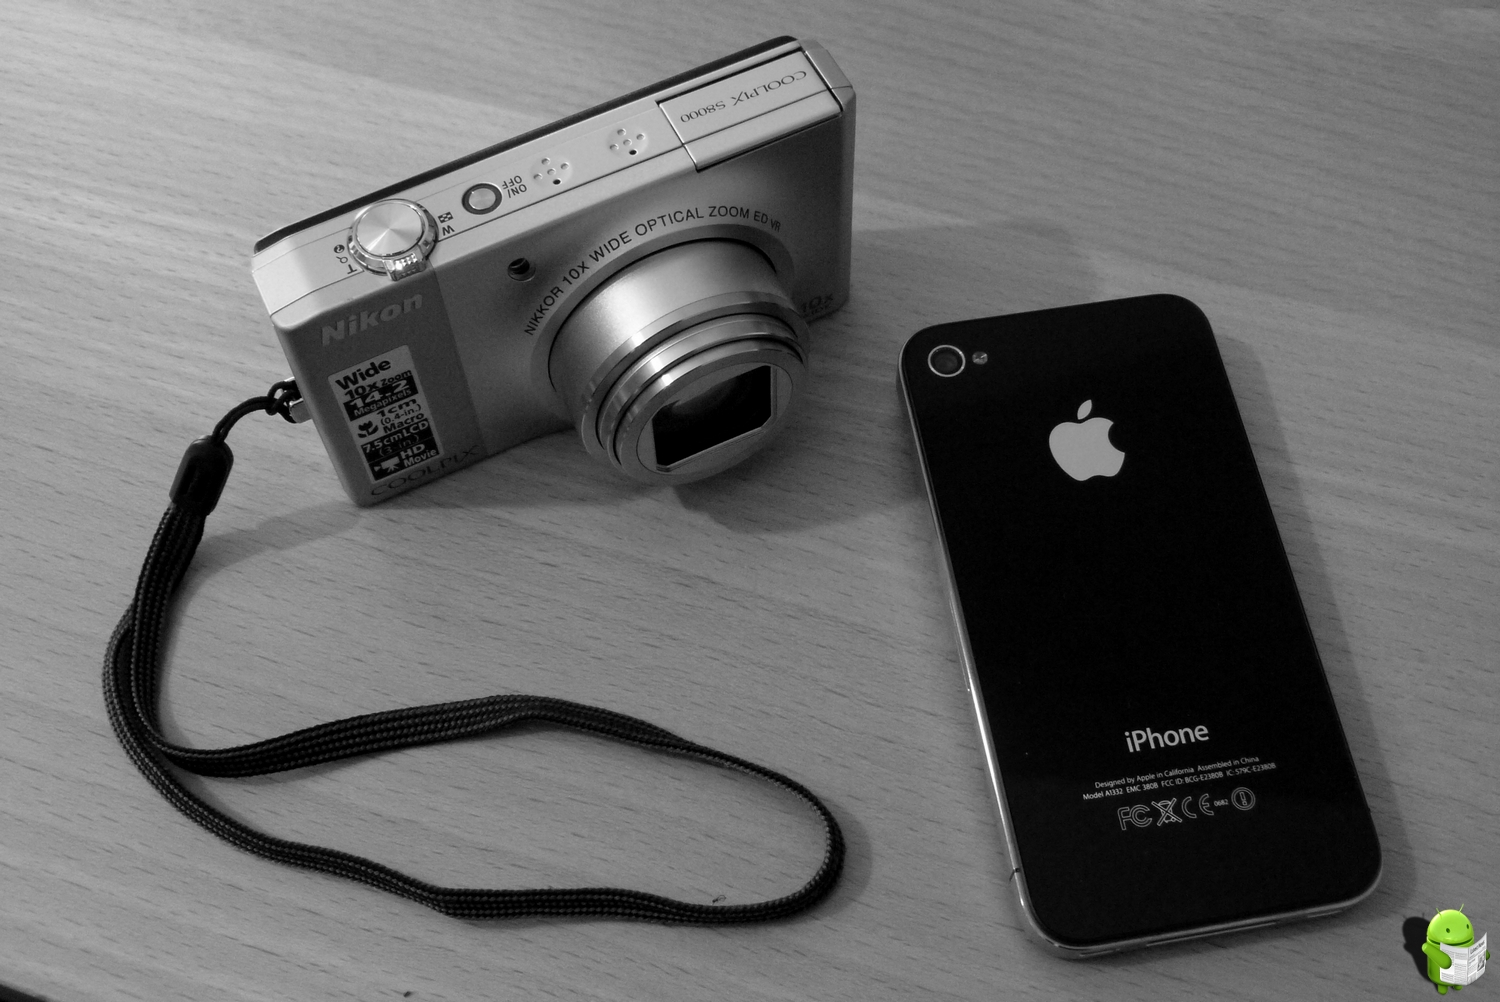 Digitalkamera vs Smartphone Nikon CoolPix 800 vs. iPhone 4